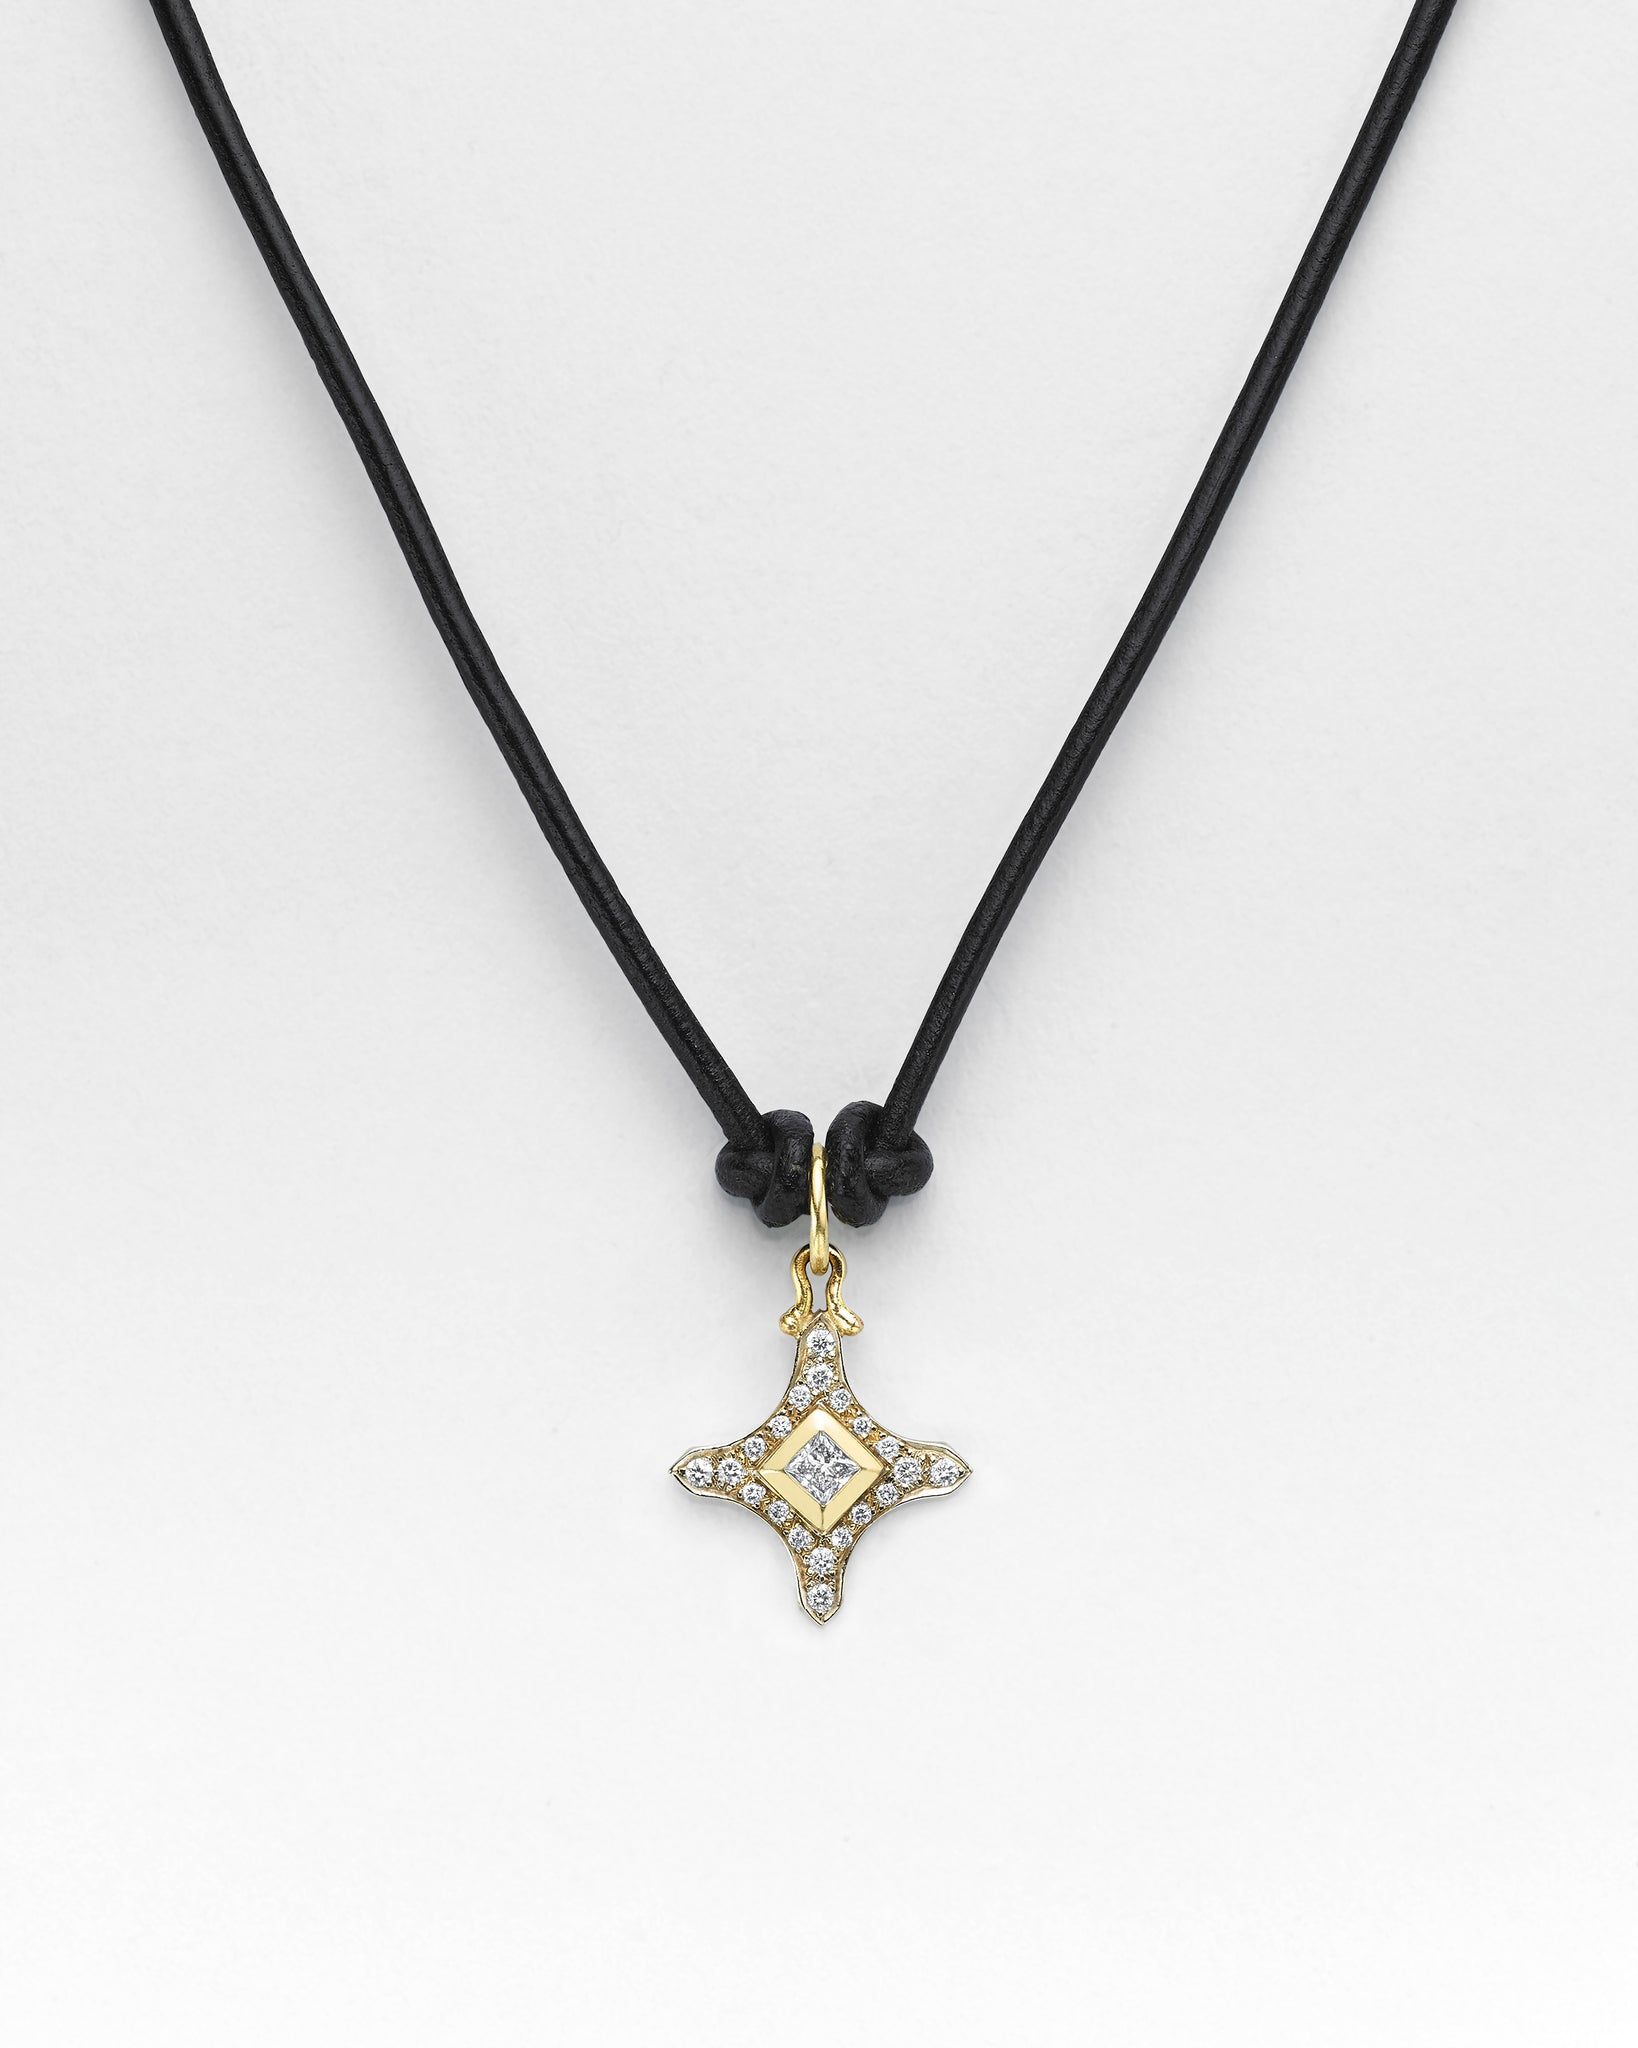 Black Butter Clover Croix Necklace